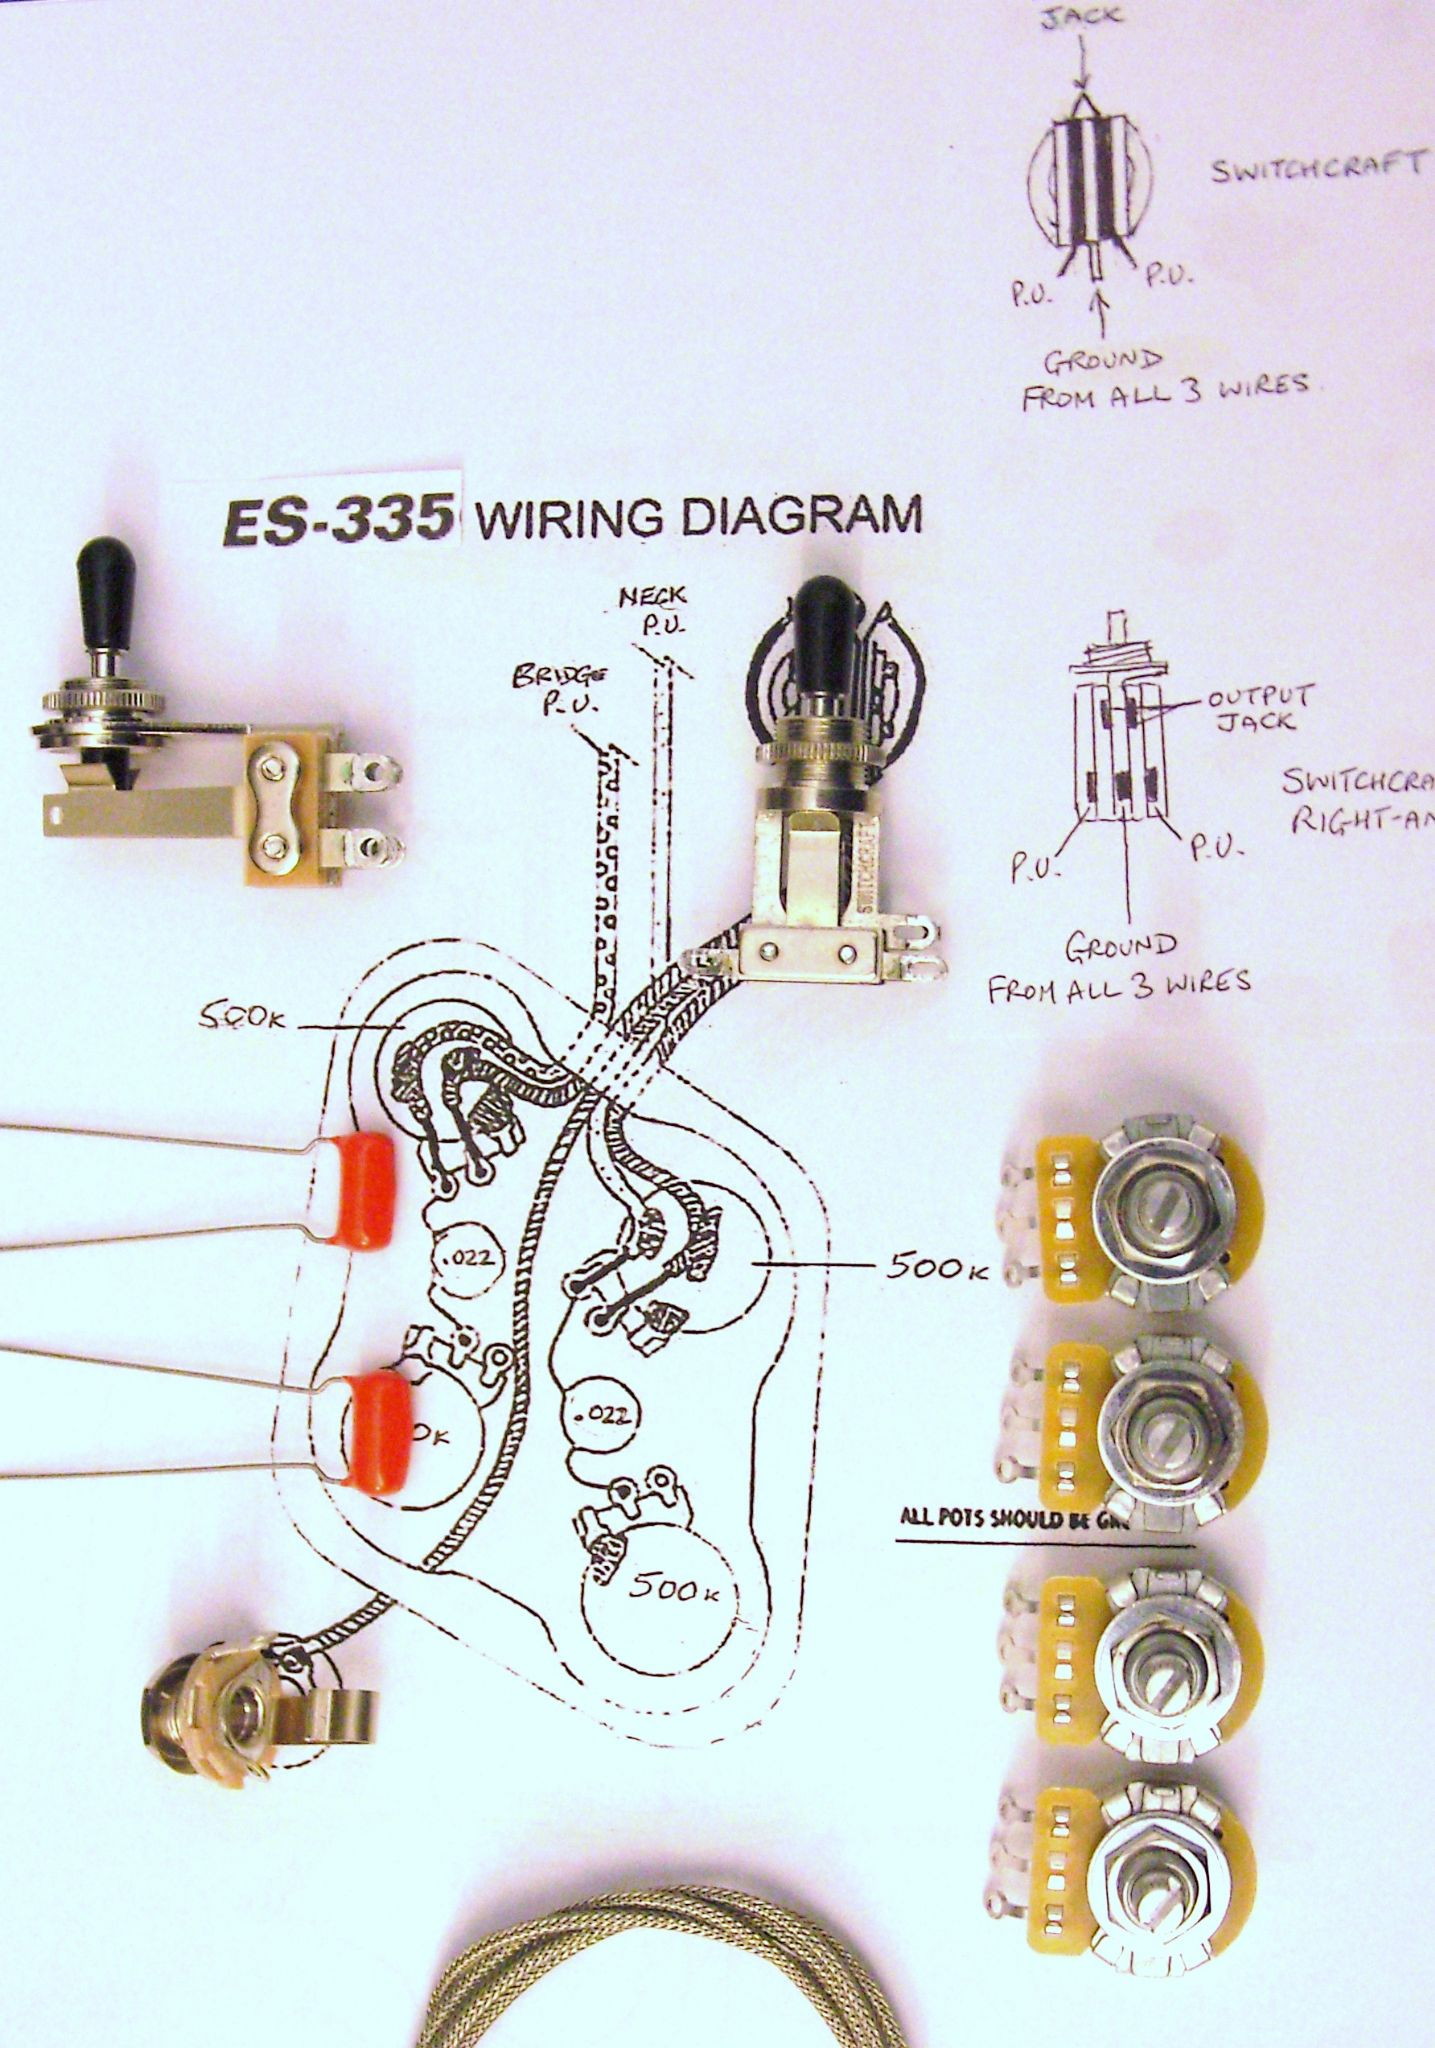 Switchcraft Toggle Switch Wiring Diagram Diagrams 3 Position Lever Kit For 335 With Right Angle On Off